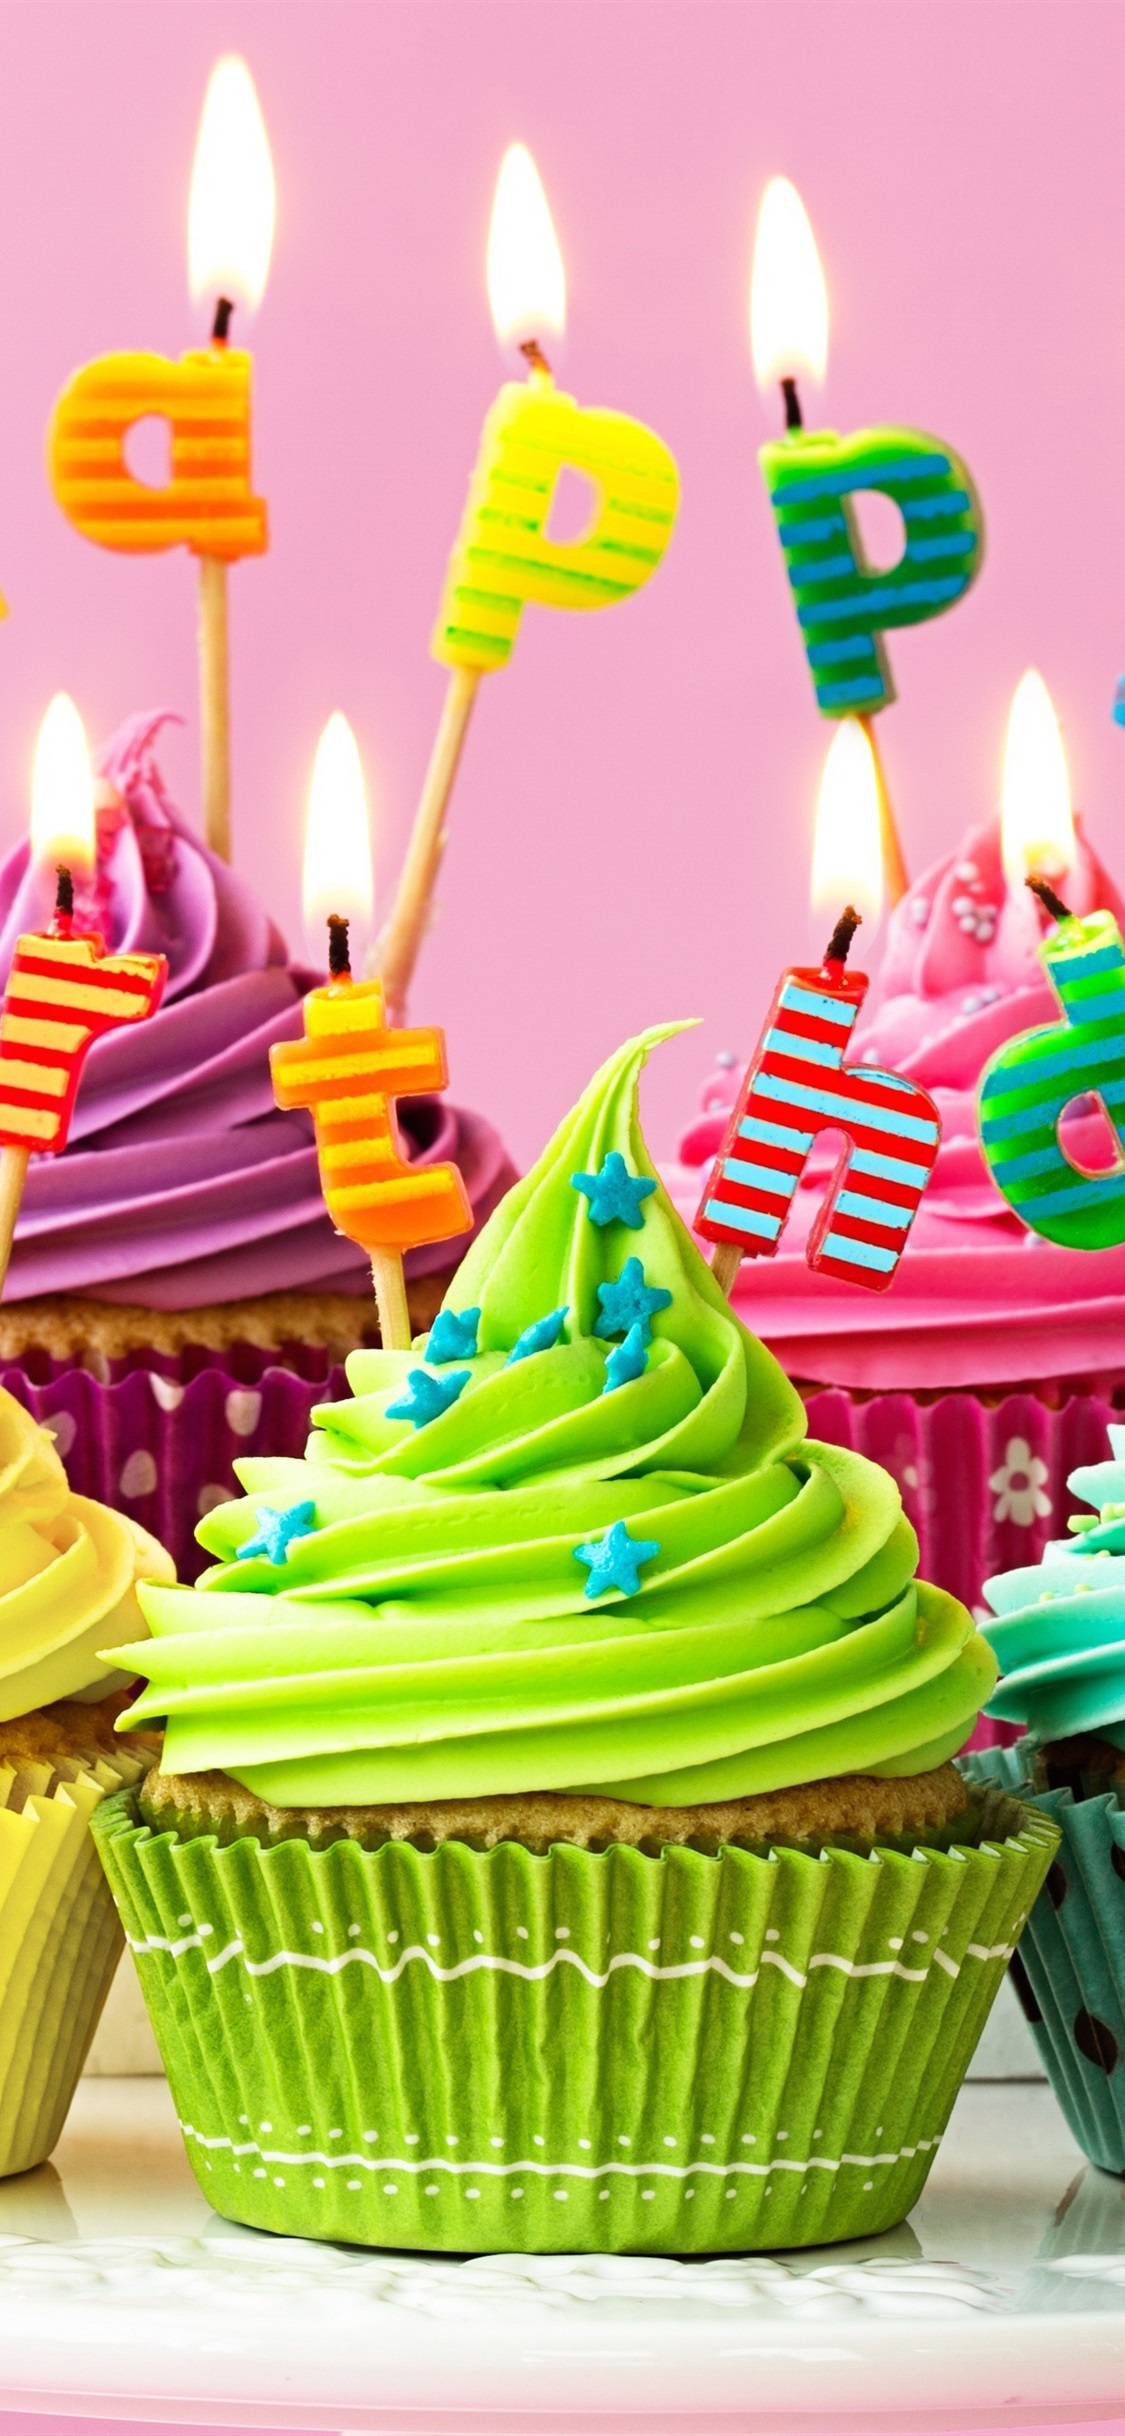 Happy Birthday Candles Fire Colorful Cupcakes 1125x2436 IPhone XS